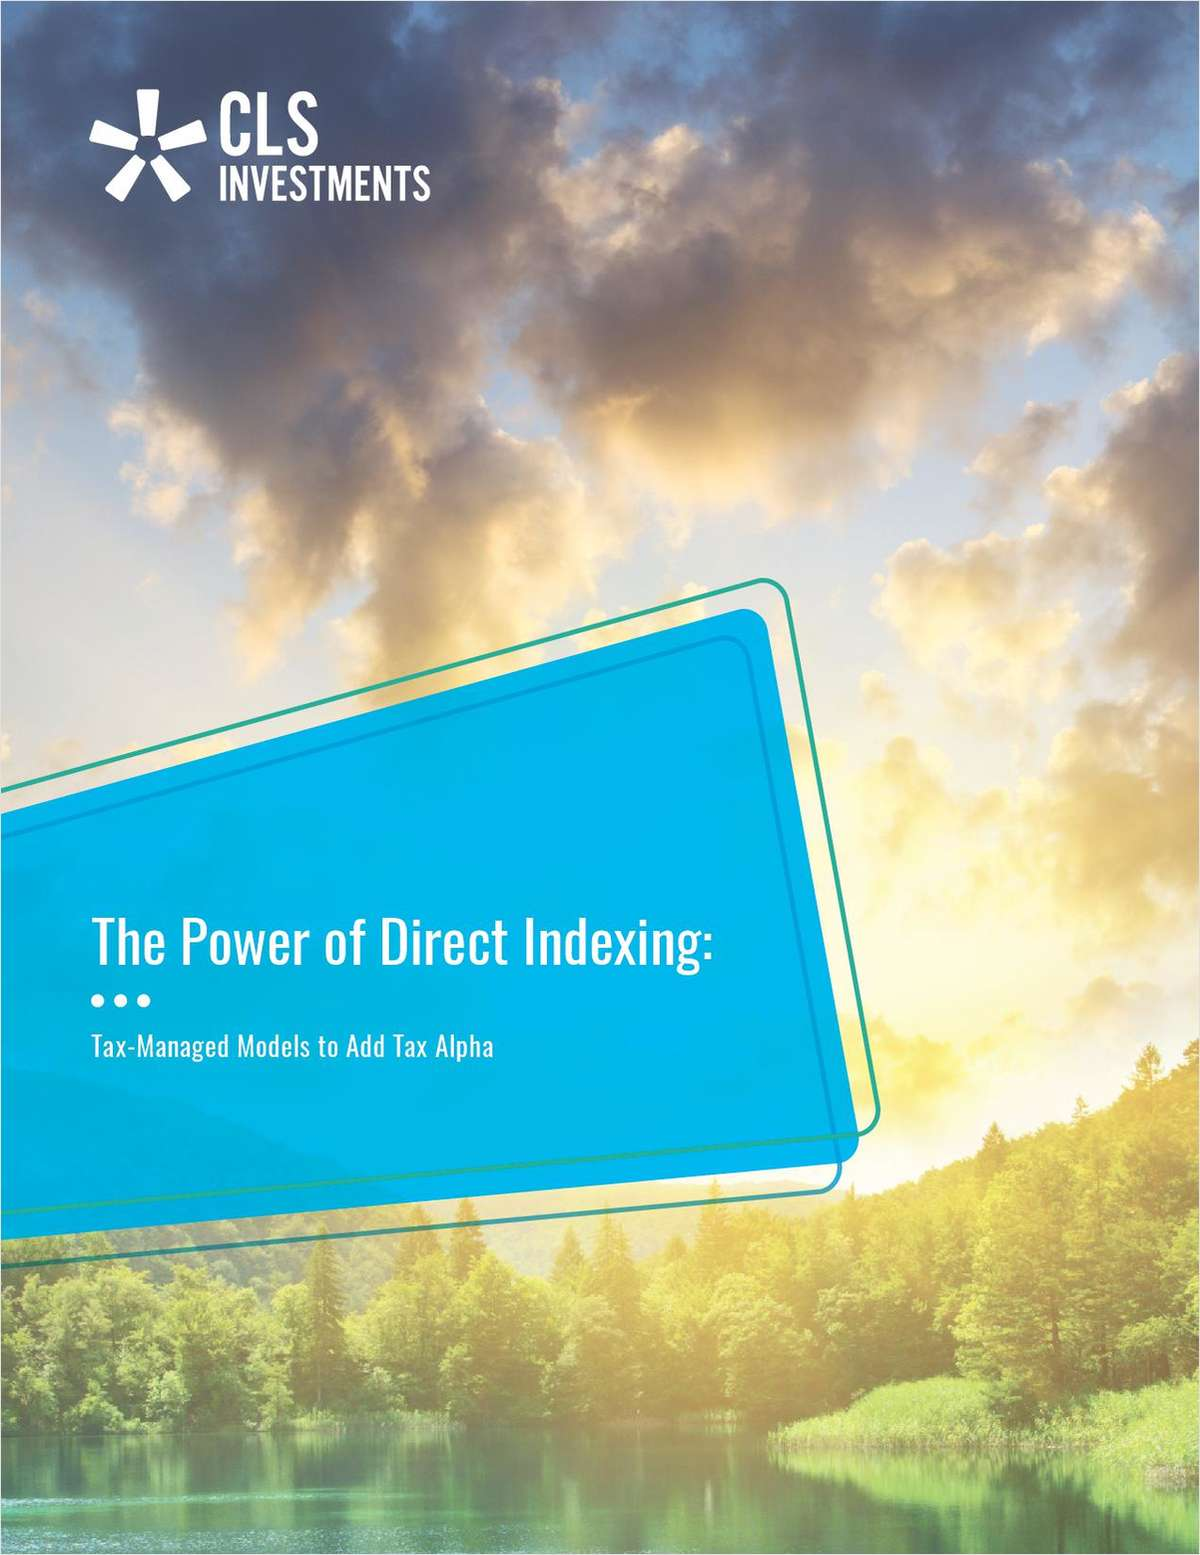 The Power of Direct Indexing: Tax-Managed Models to Add Tax Alpha